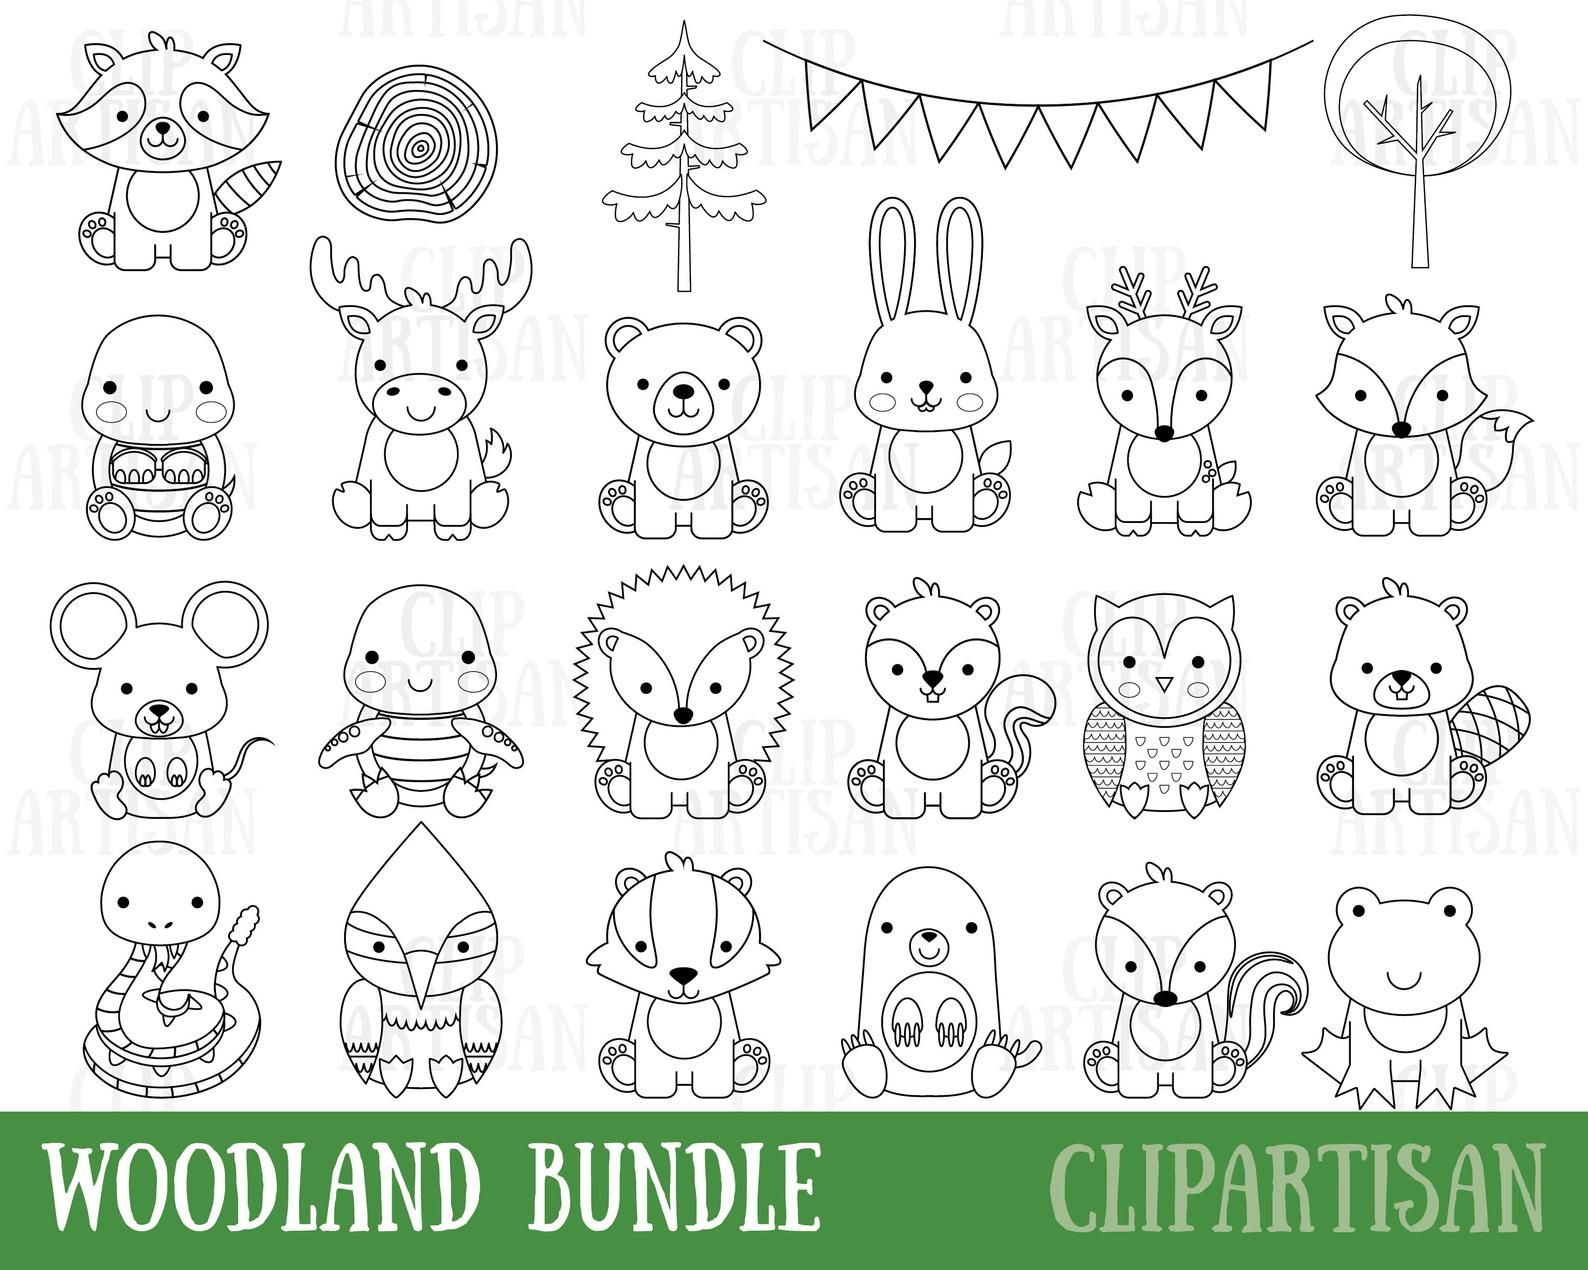 Woodland Baby Animals Clipart Digital Stamps Bundle Forest Animal Clipart Woodland Baby Shower Printable In 2021 Animal Clipart Digital Stamps Cute Animal Clipart